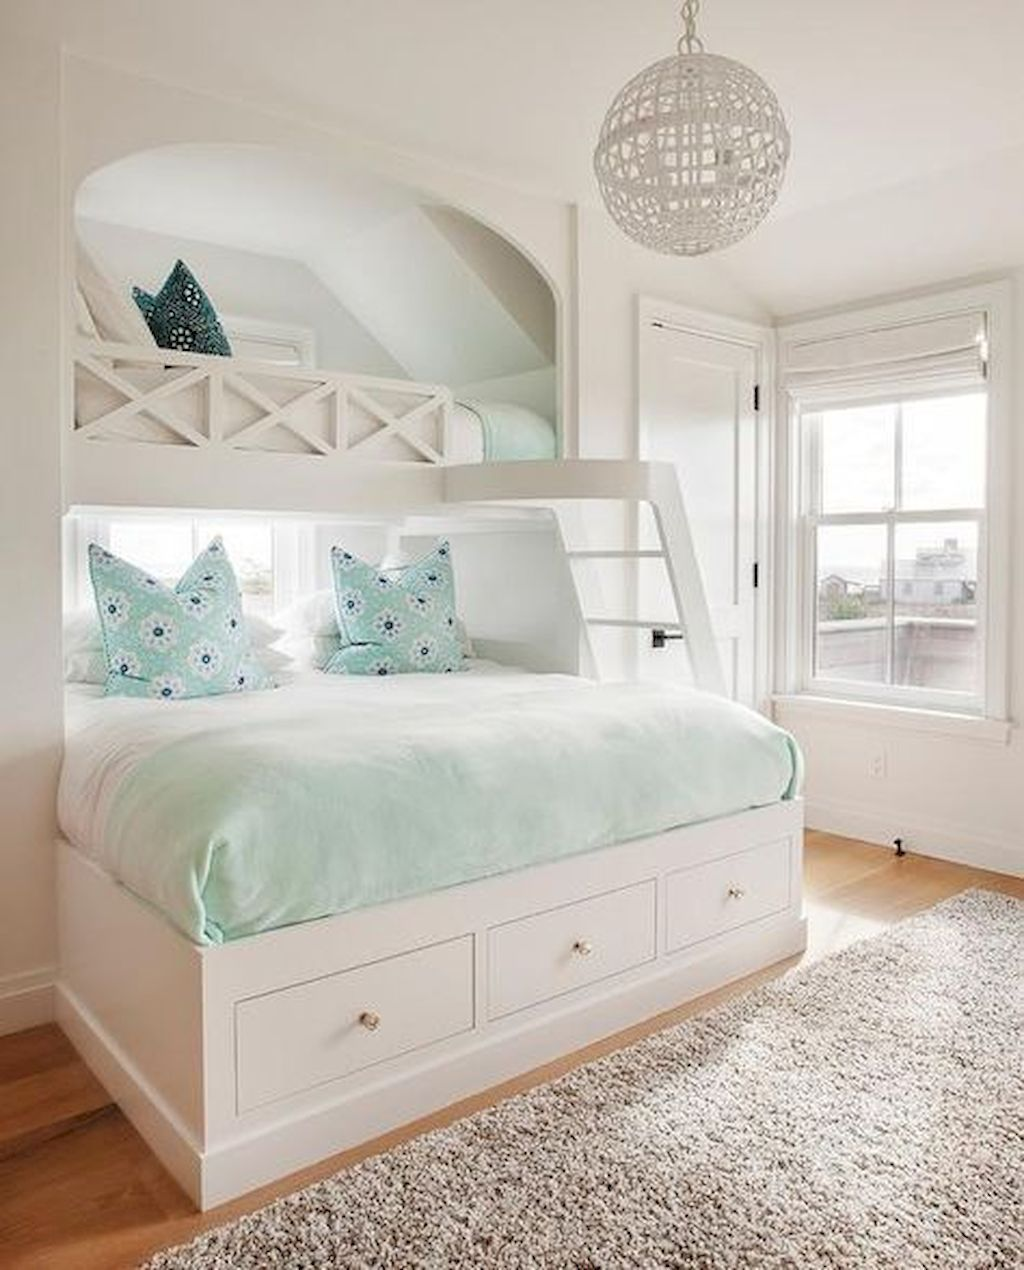 Amazing Attic Bedroom Design Ideas That You Will Like 24